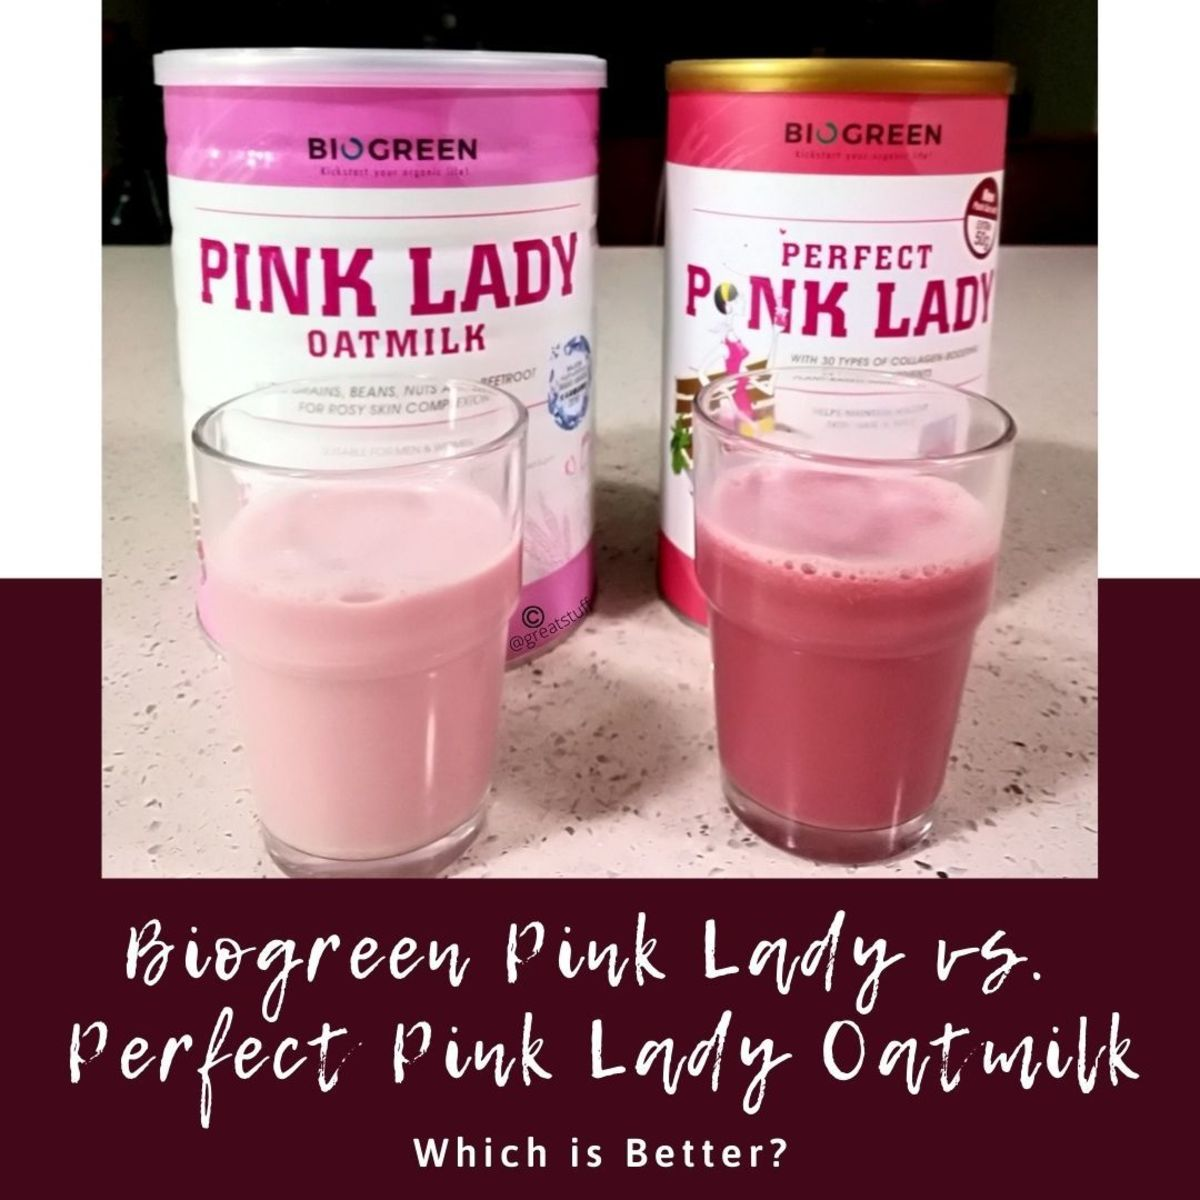 Biogreen Pink Lady vs. Perfect Pink Lady Oatmilk. Which of these health drinks is better?